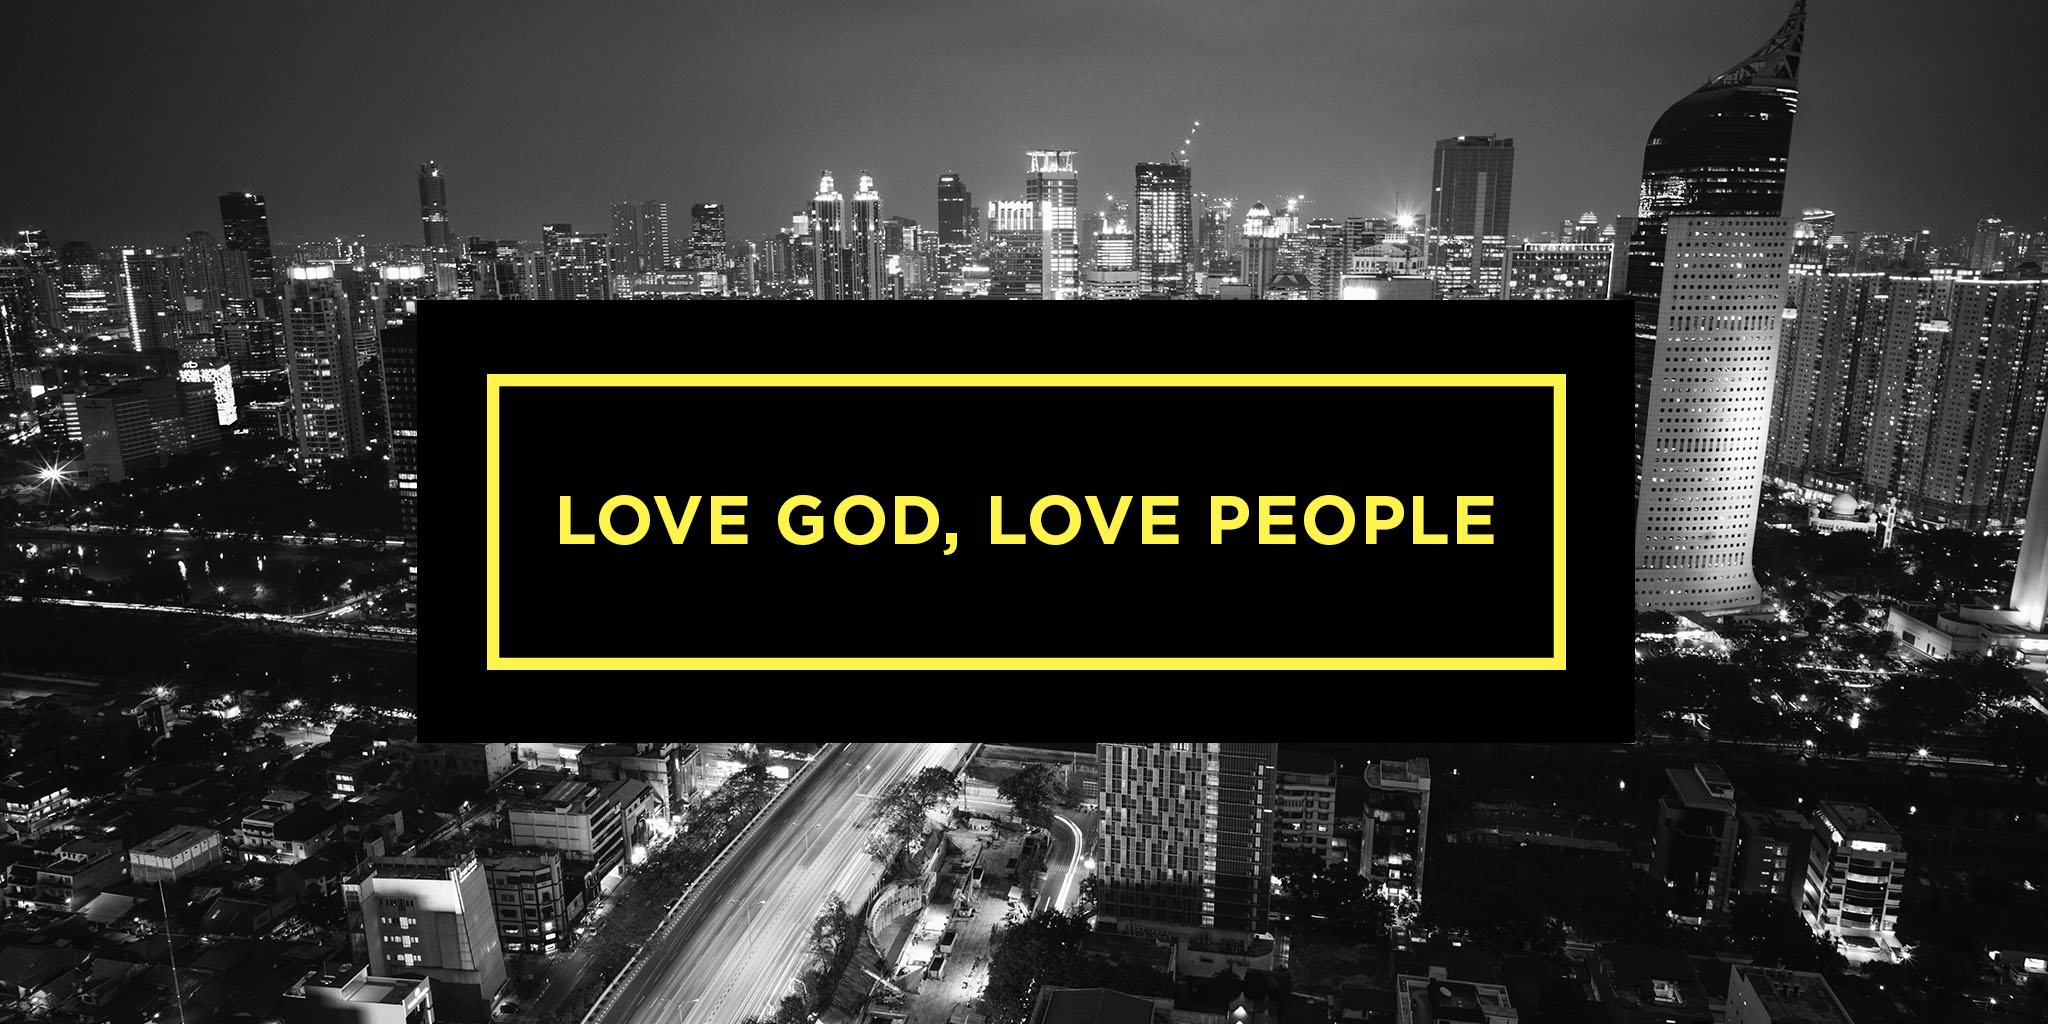 Love God, Love People W2 | A Reflective Love